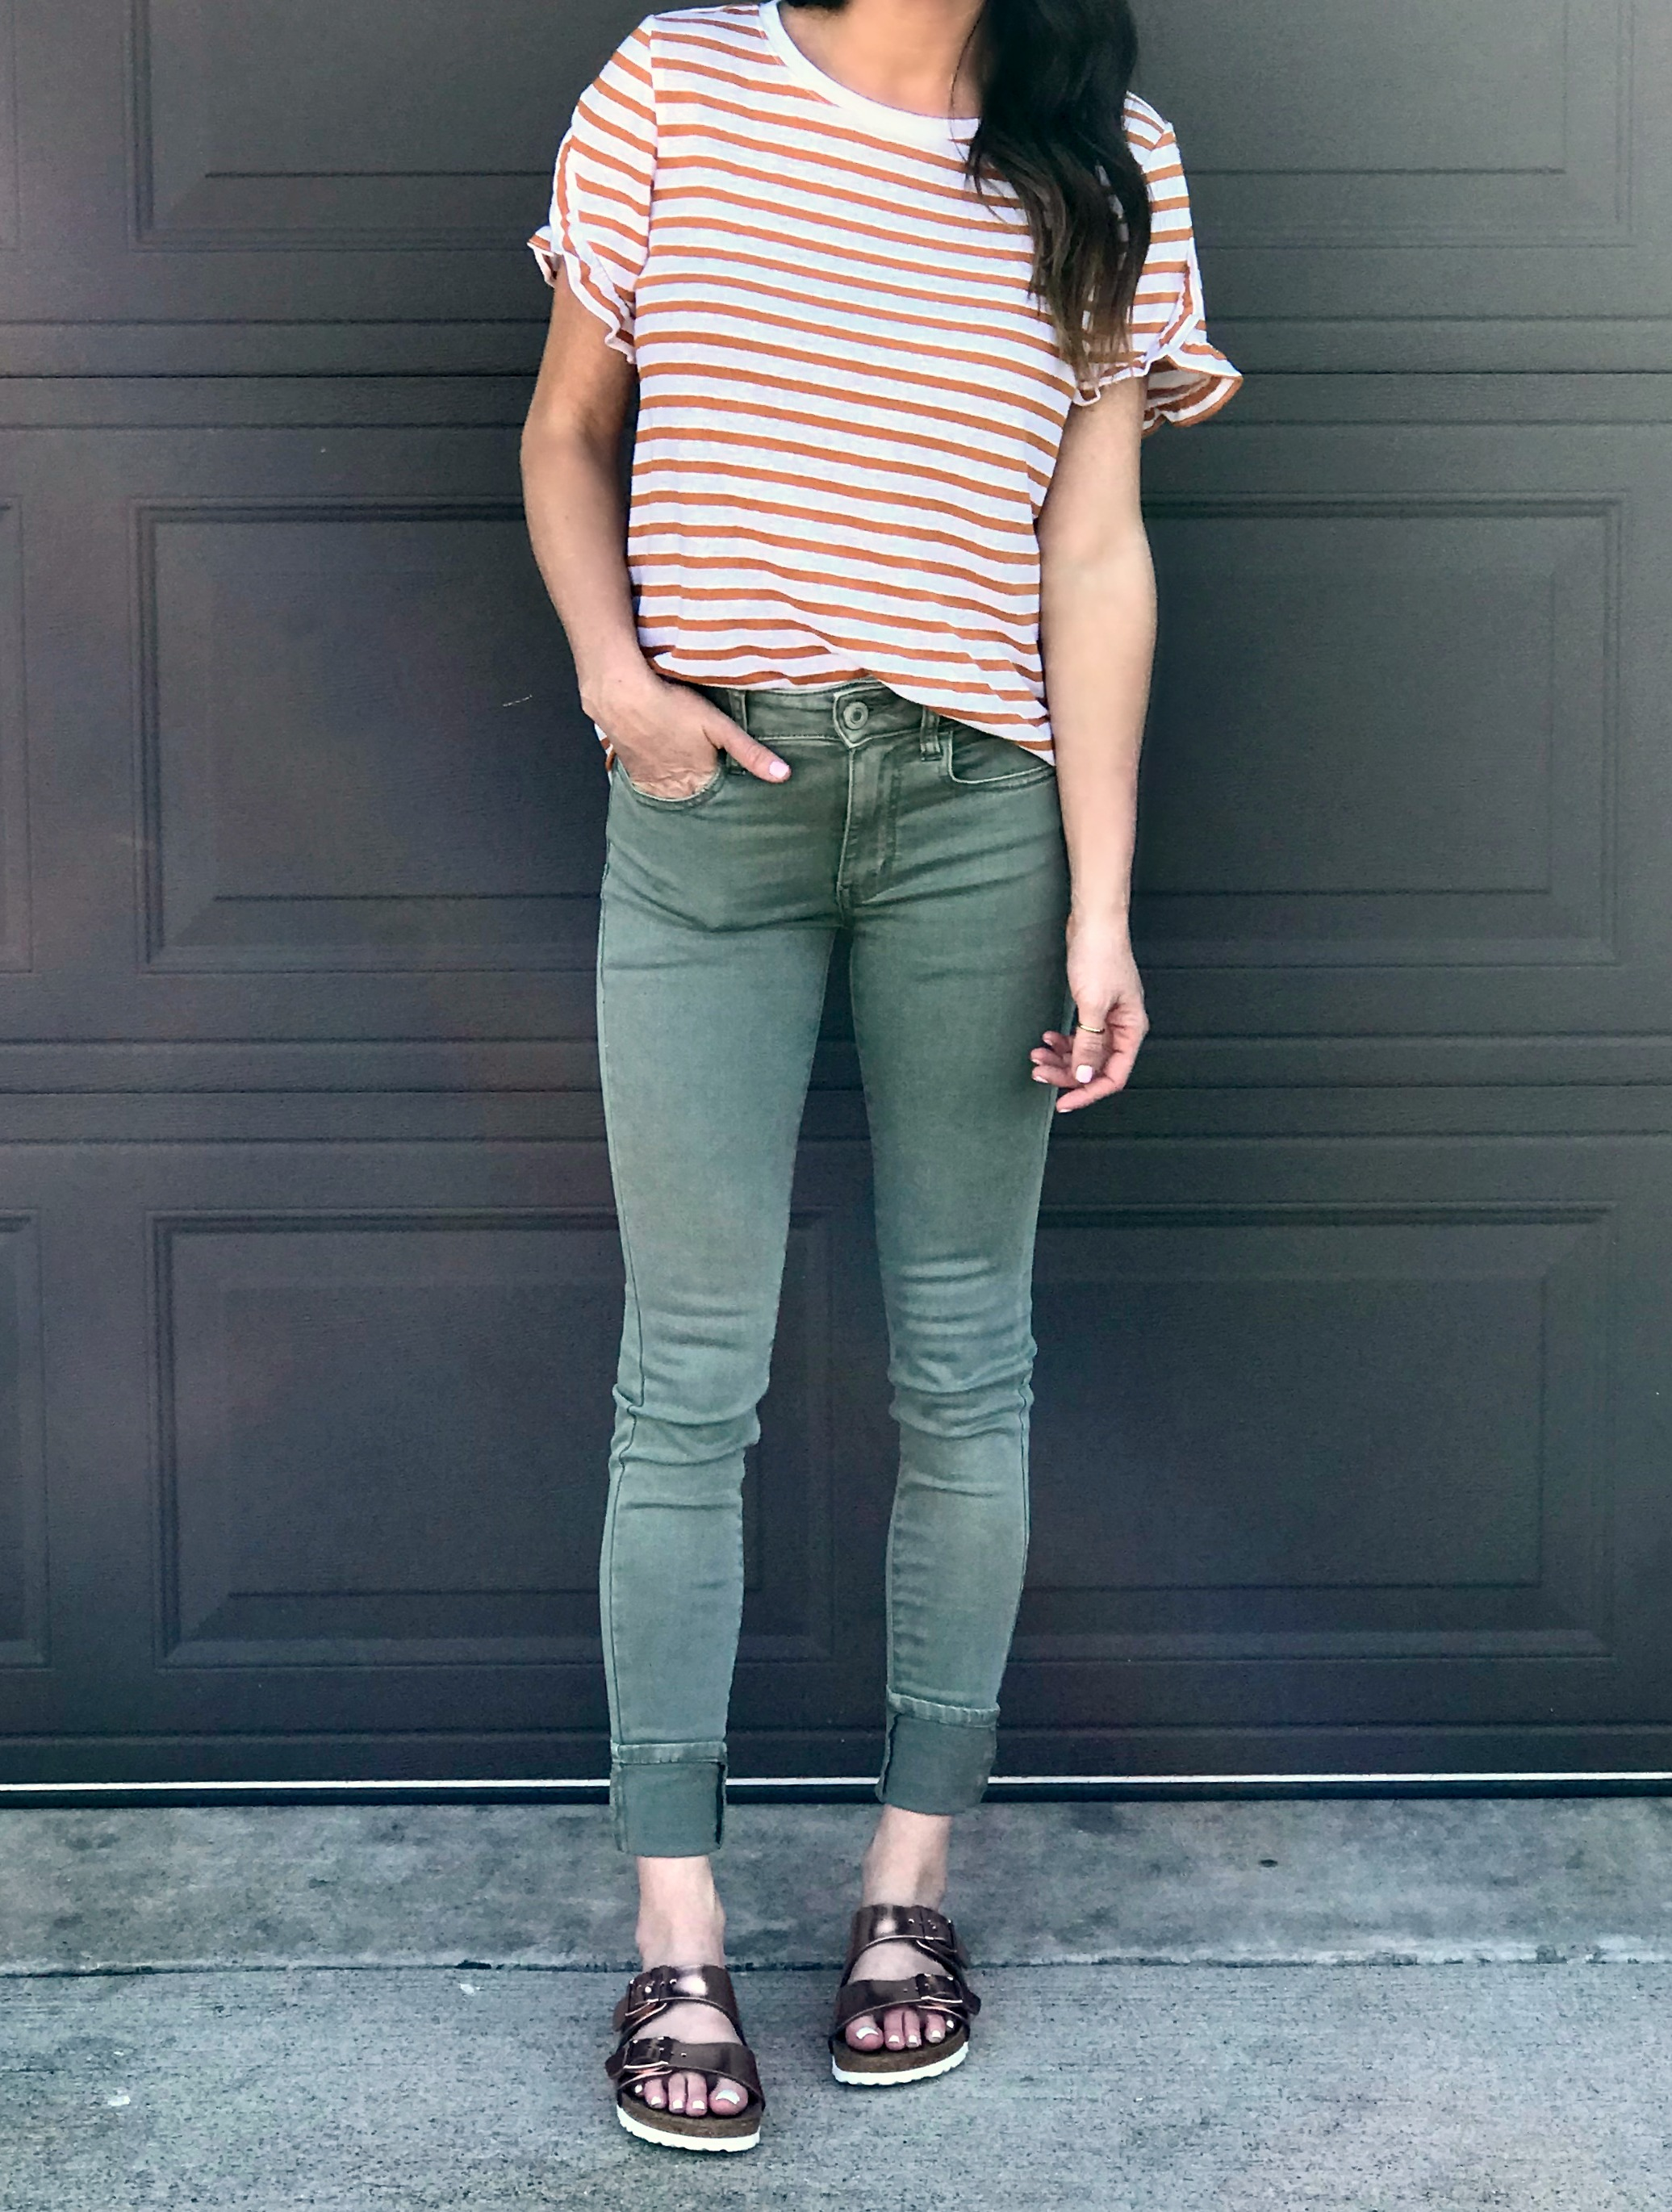 Green Pants, striped top, gold birkenstocks